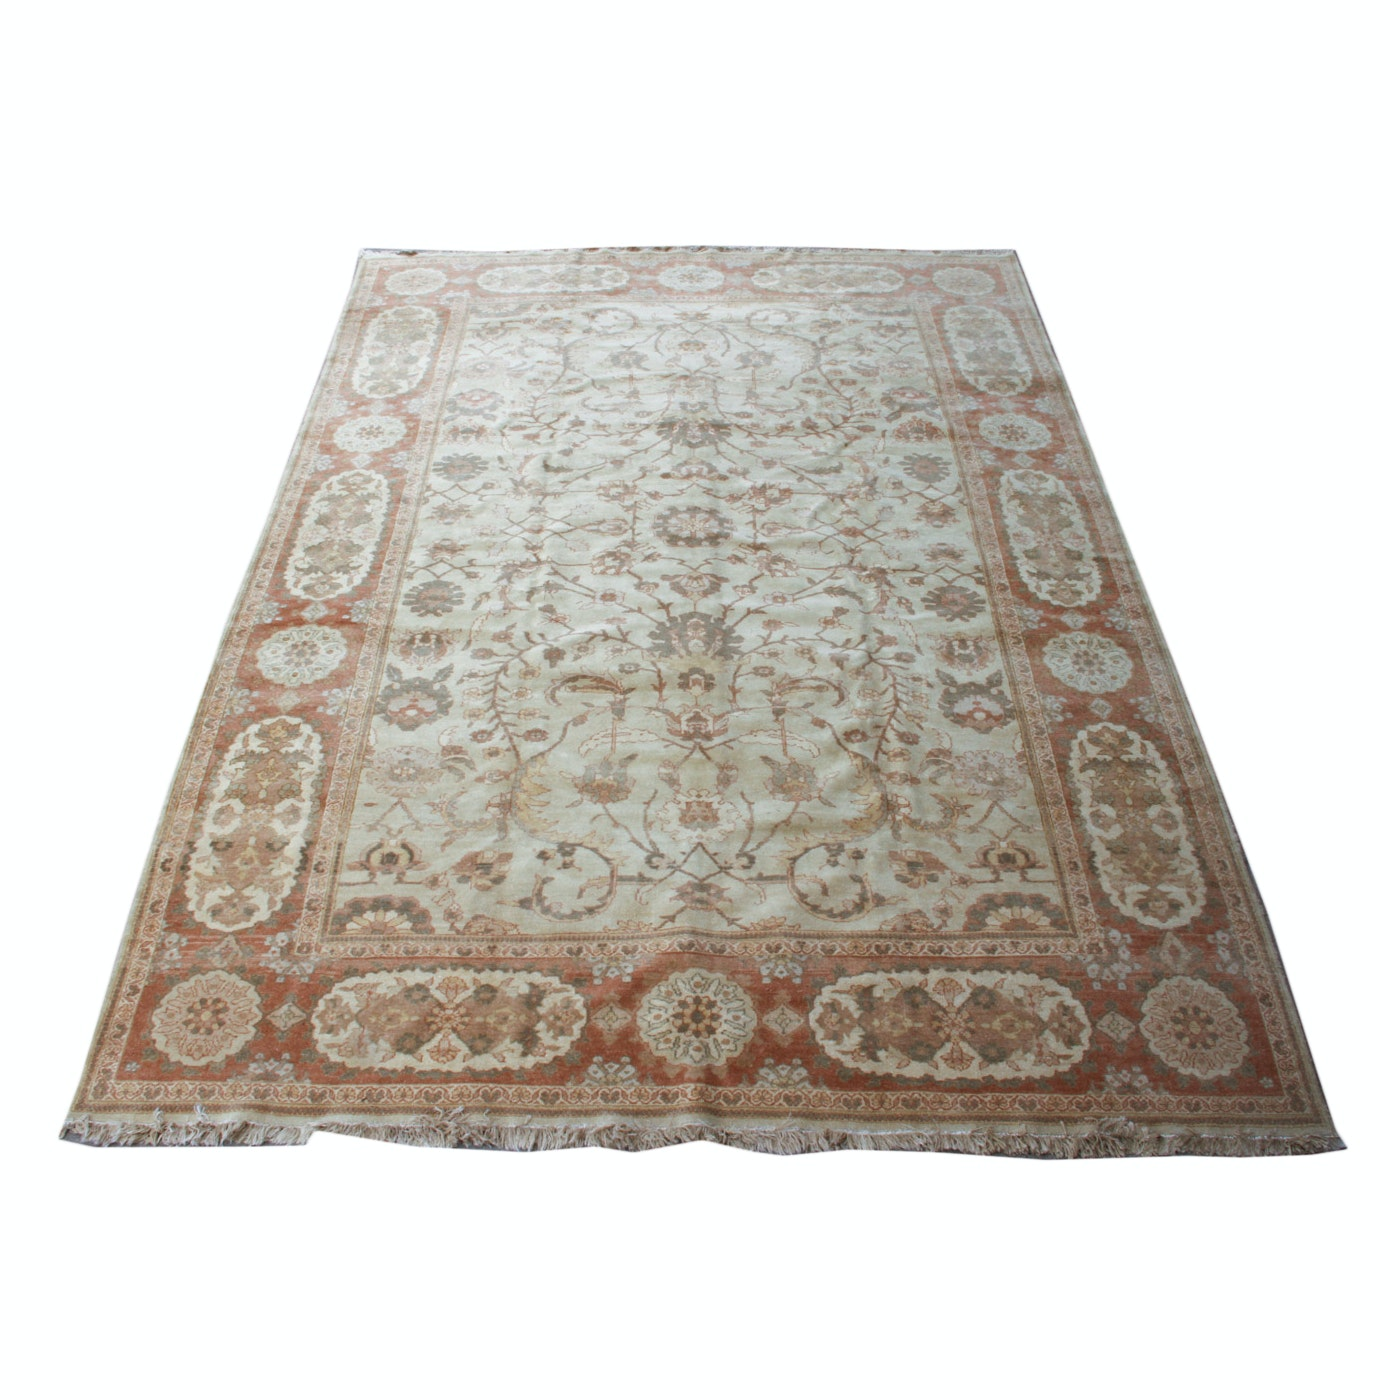 Hand-Knotted Persian Mahal Area Rug